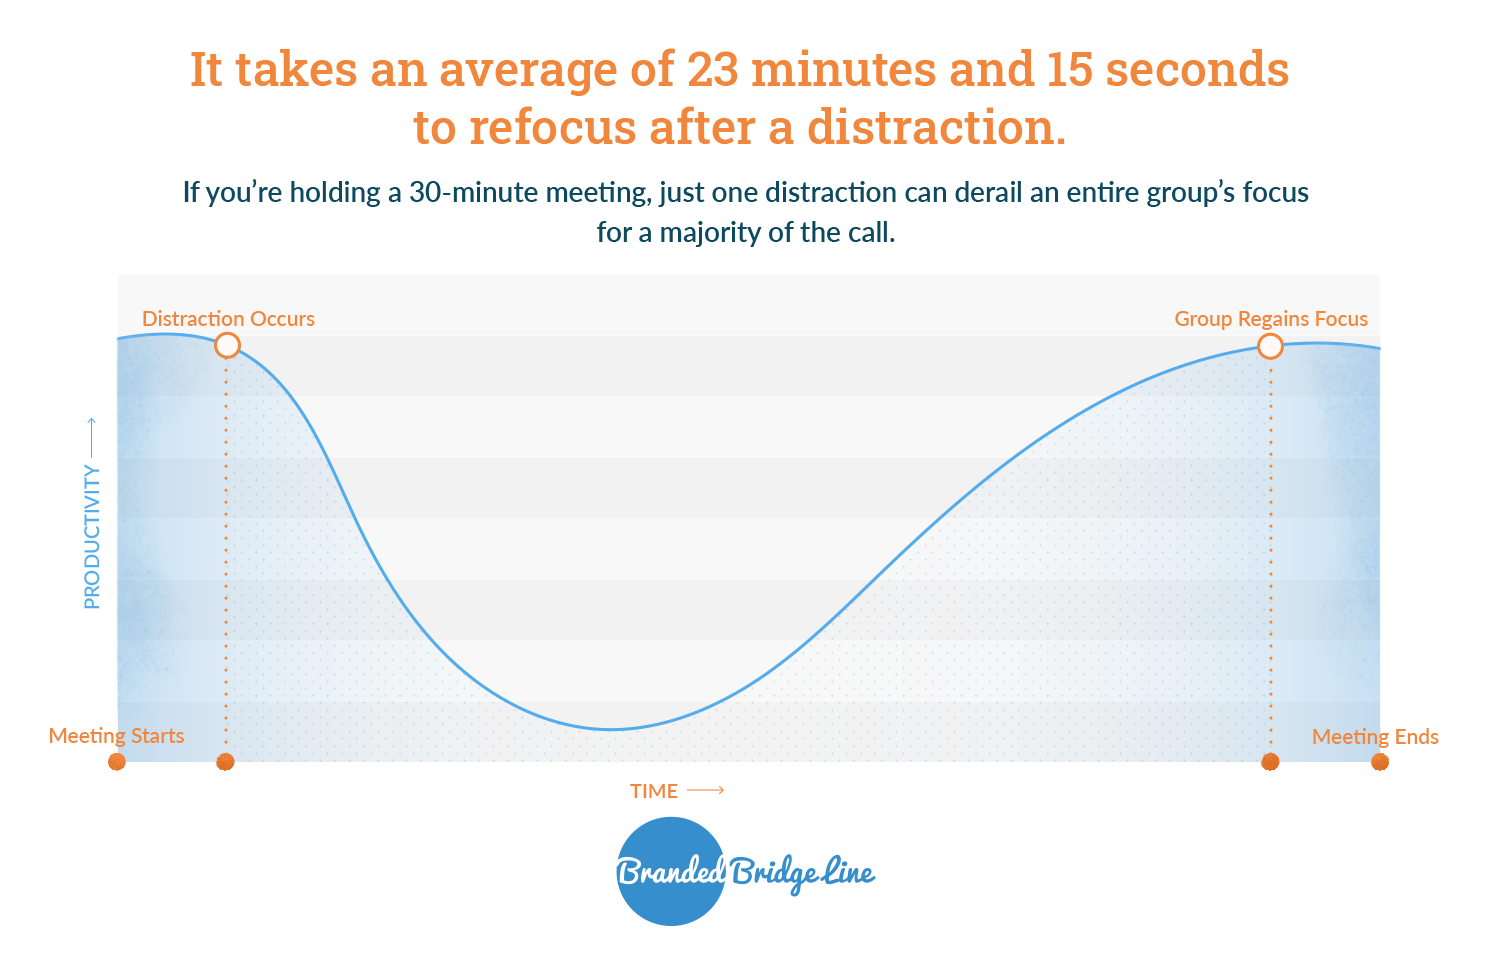 Line graph showing how just one distraction can completely derail the productivity in a 30-minute meeting